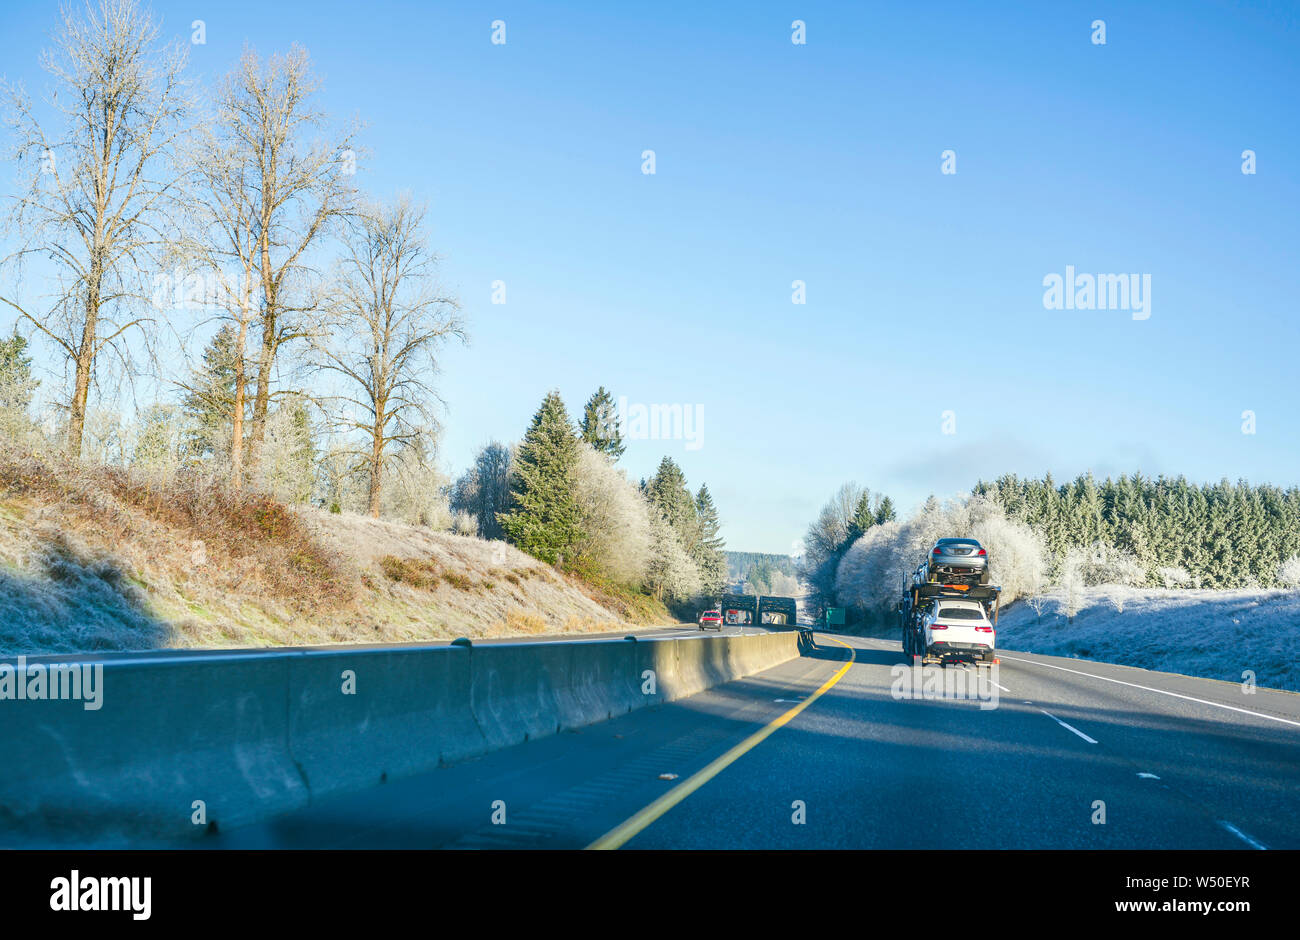 Big rig commercial grade professional car hauler semi truck transporting cars on the special two level semi trailer moving on the straight highway wit Stock Photo